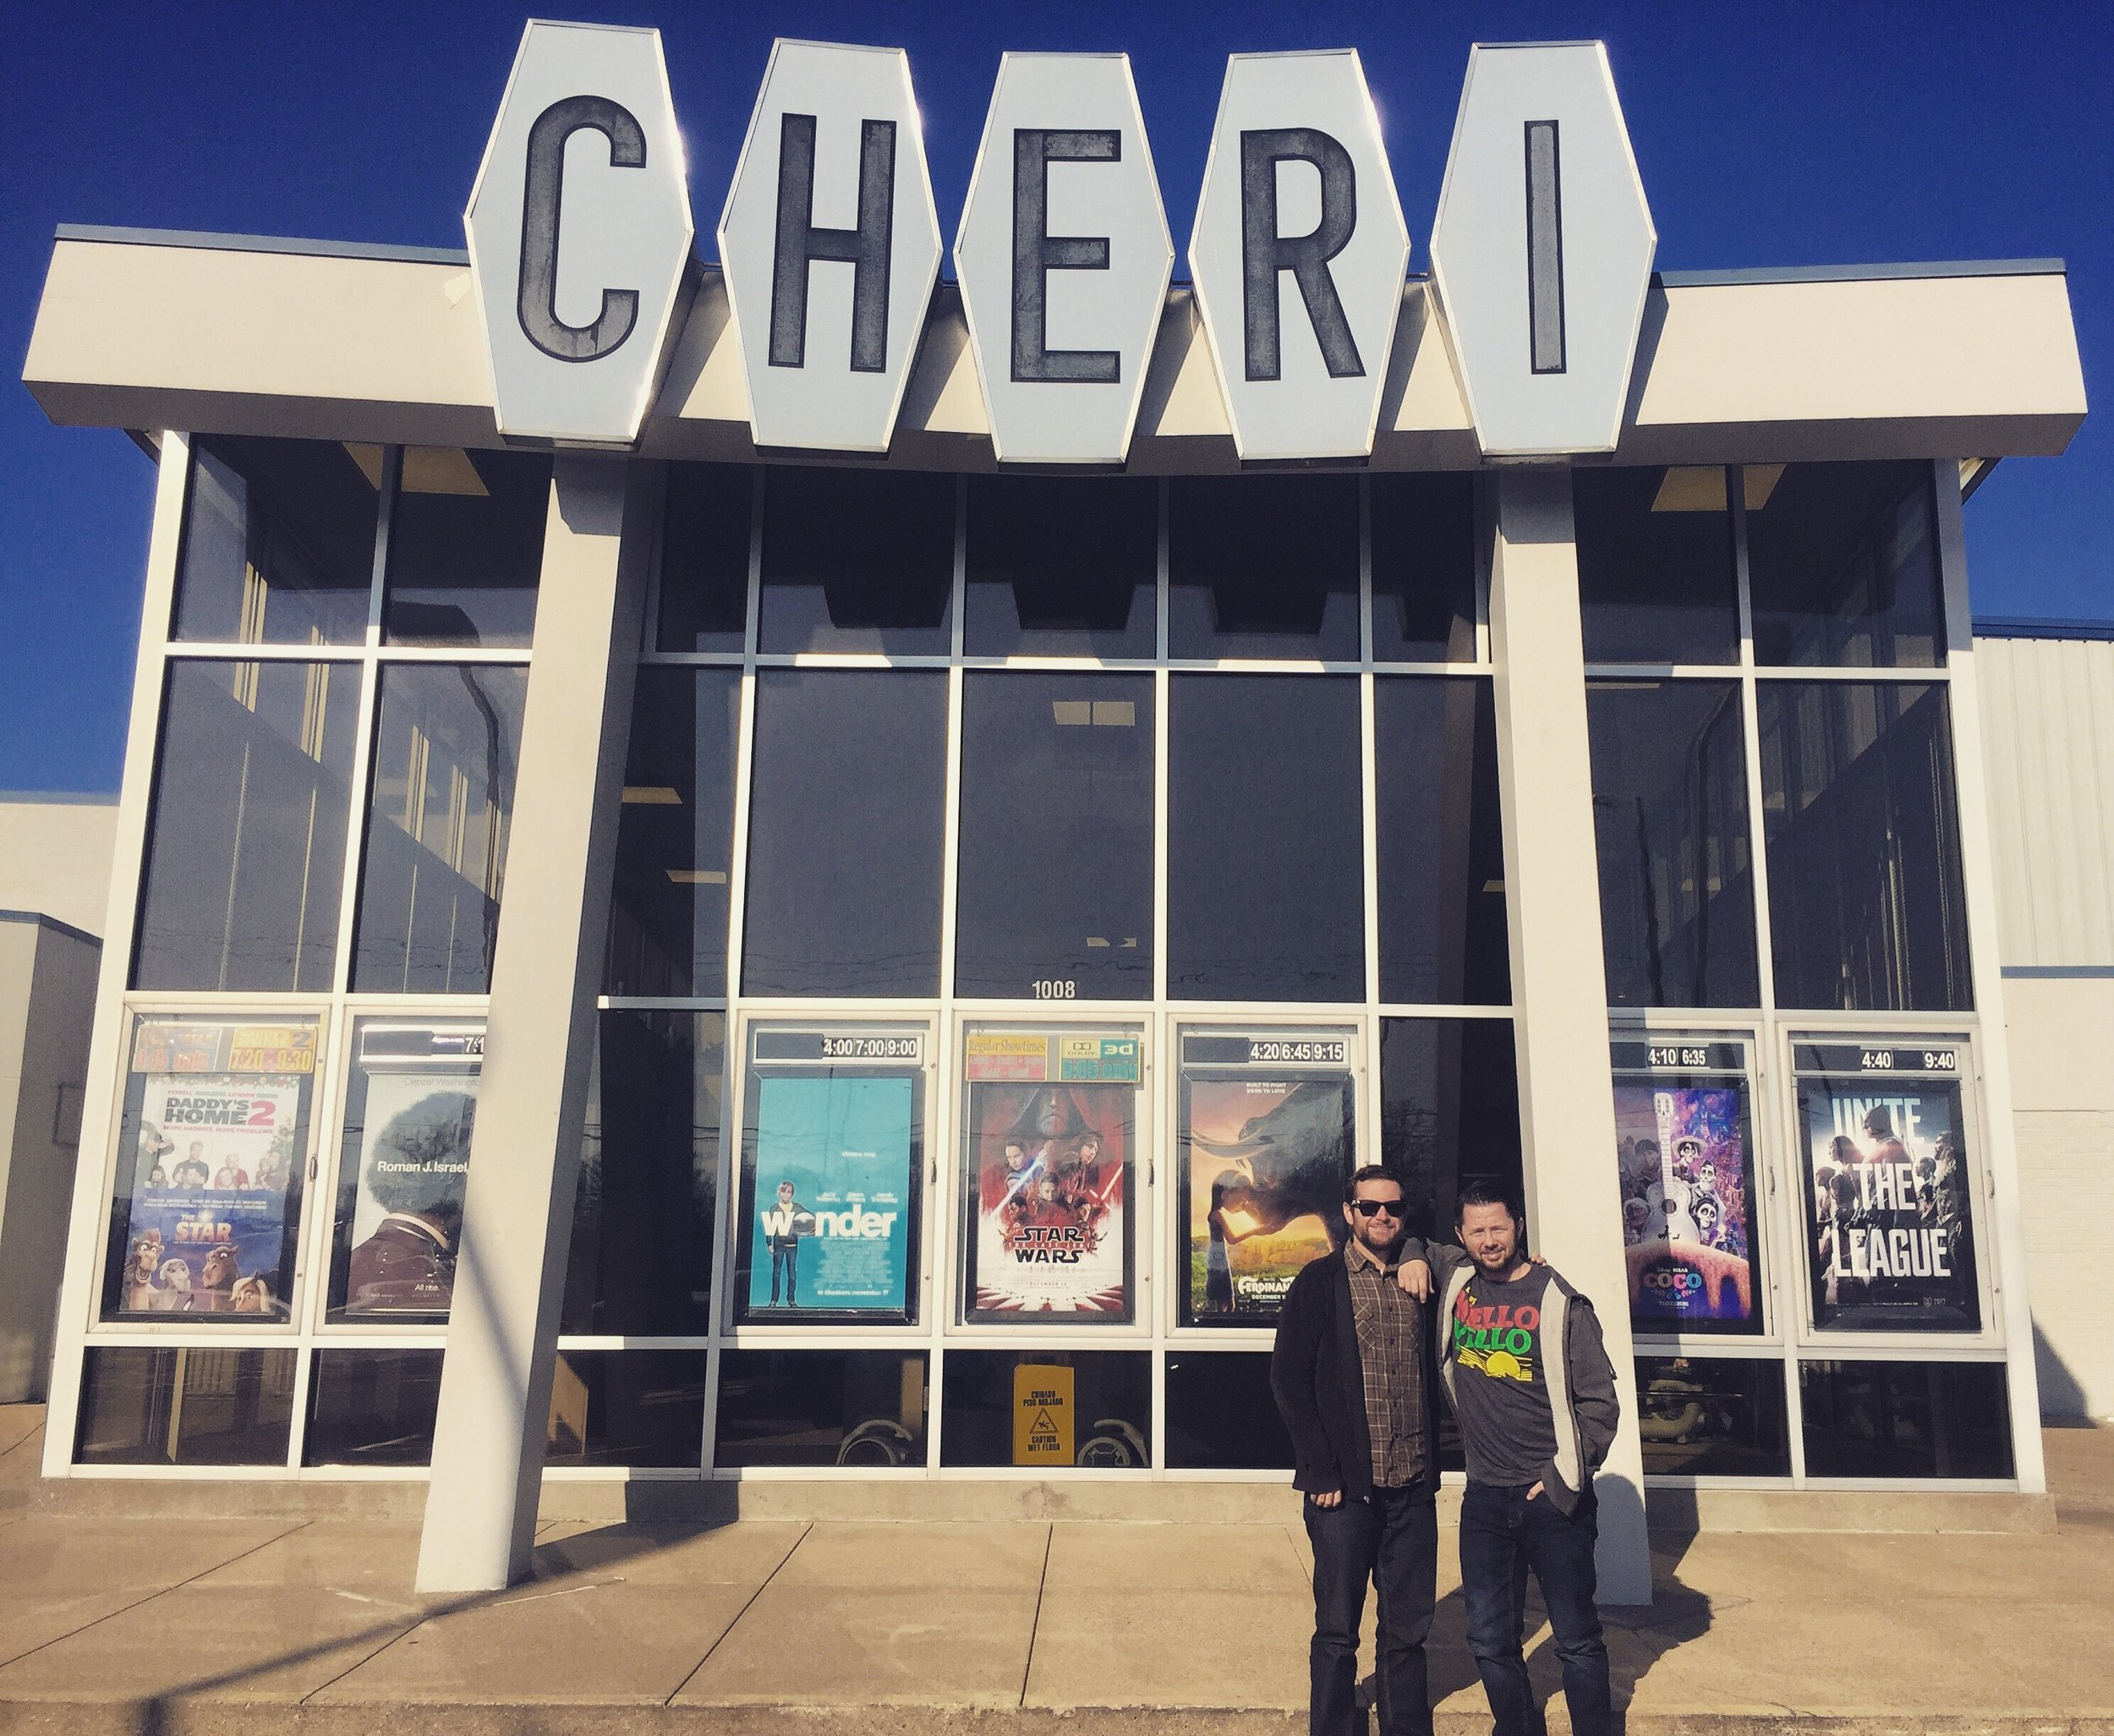 Cheri Theatres in Murray, KY